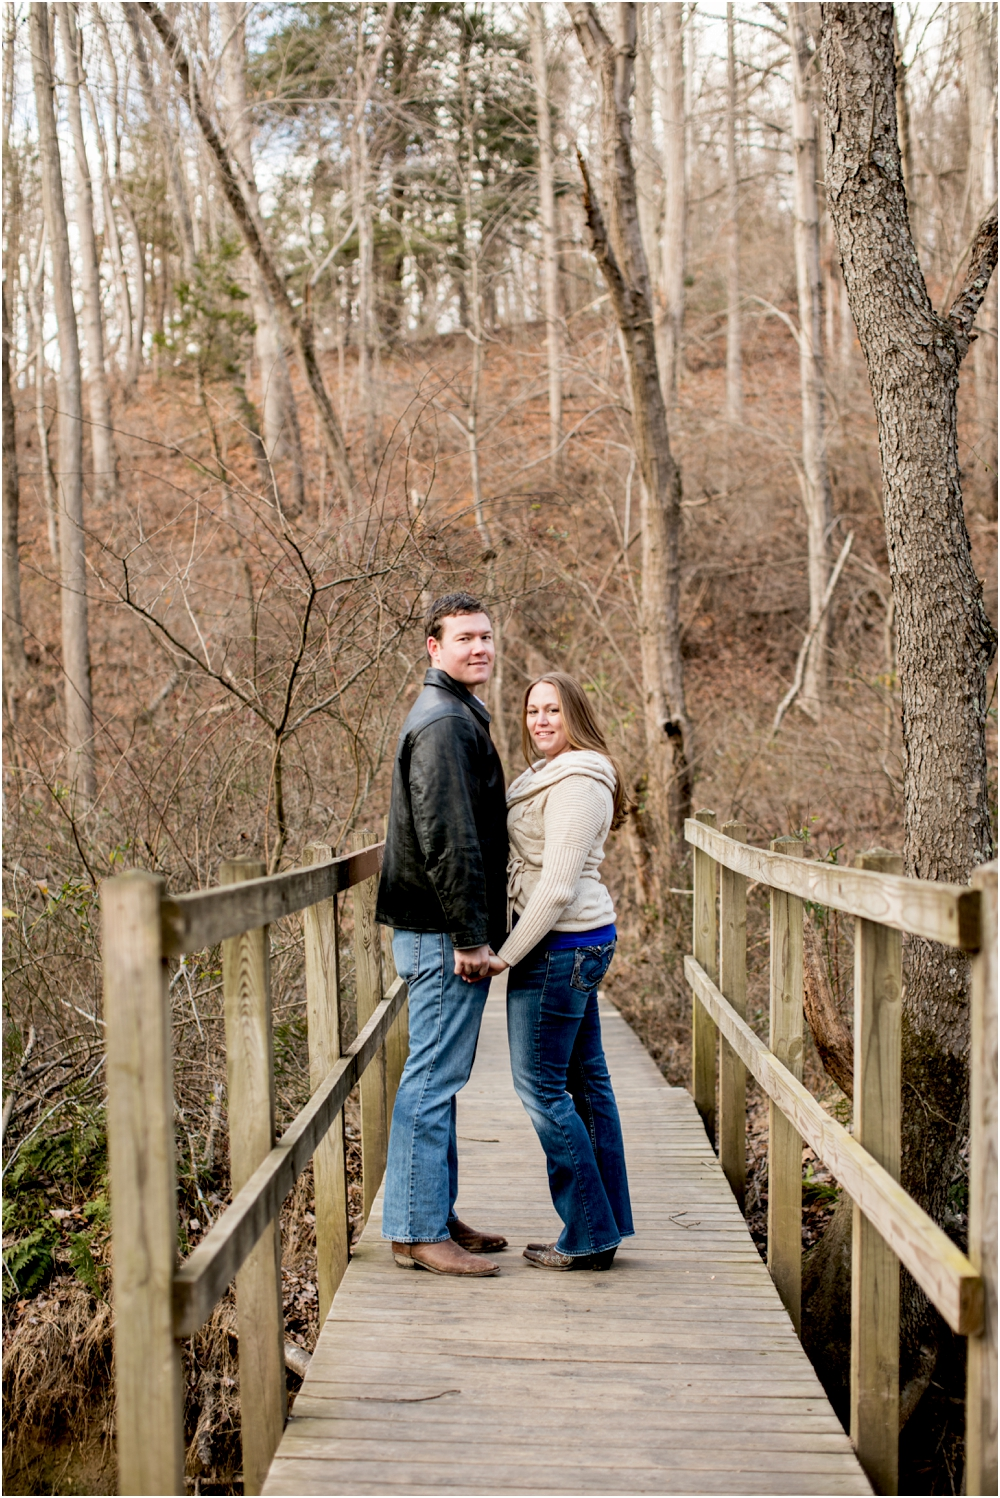 bridget jeff woods engagement session living radiant photography photos_0026.jpg